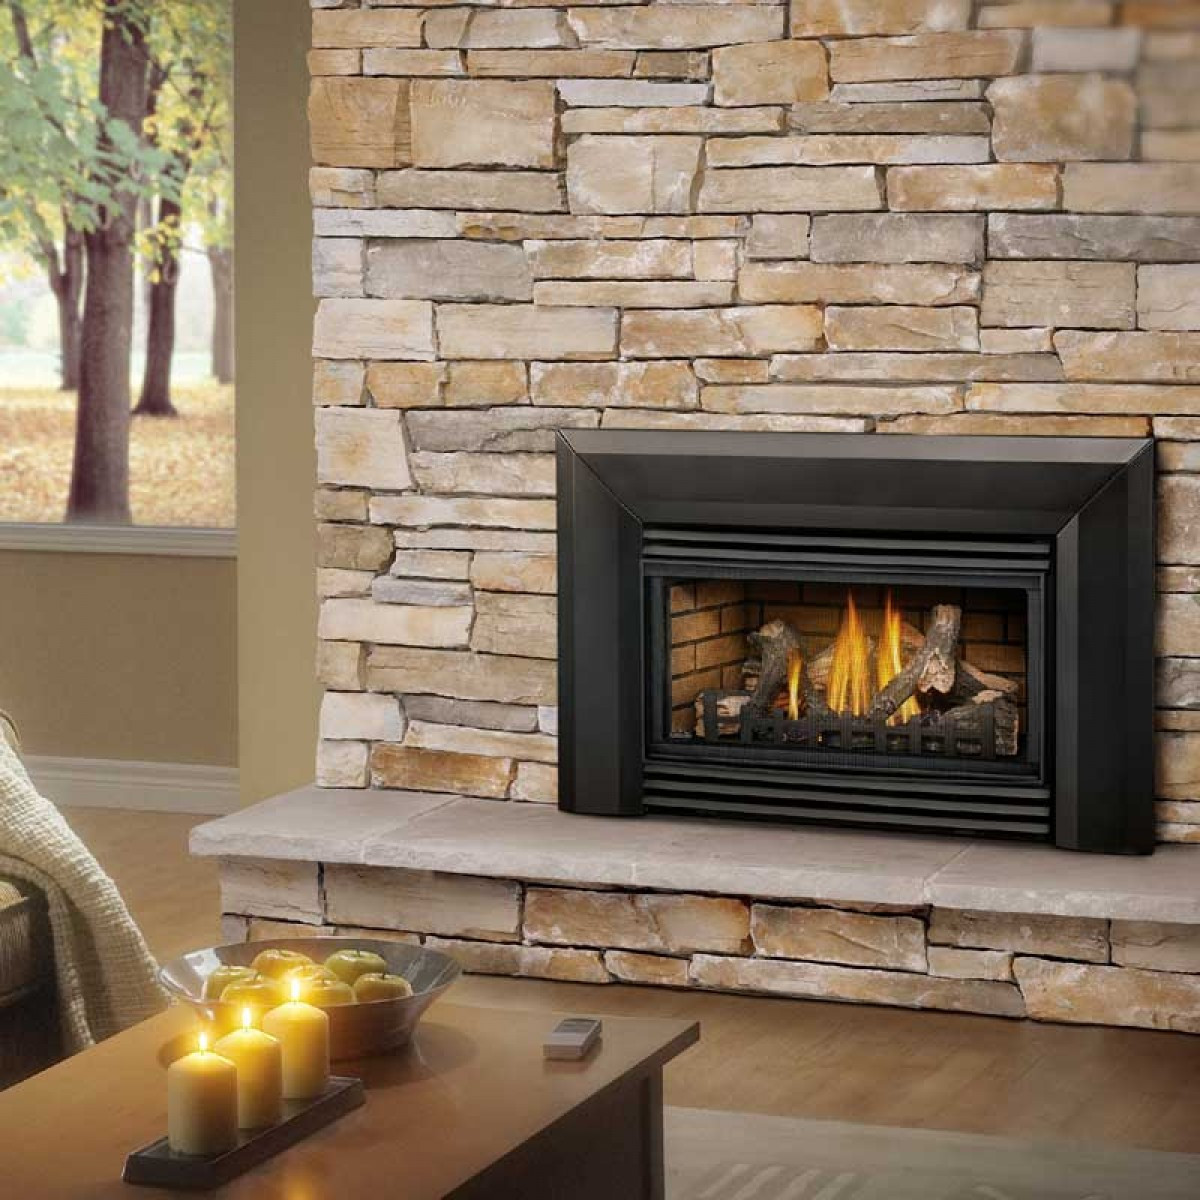 Best ideas about Propane Fireplace Inserts . Save or Pin Napoleon Roxbury 30 Gas Fireplace insert Now.